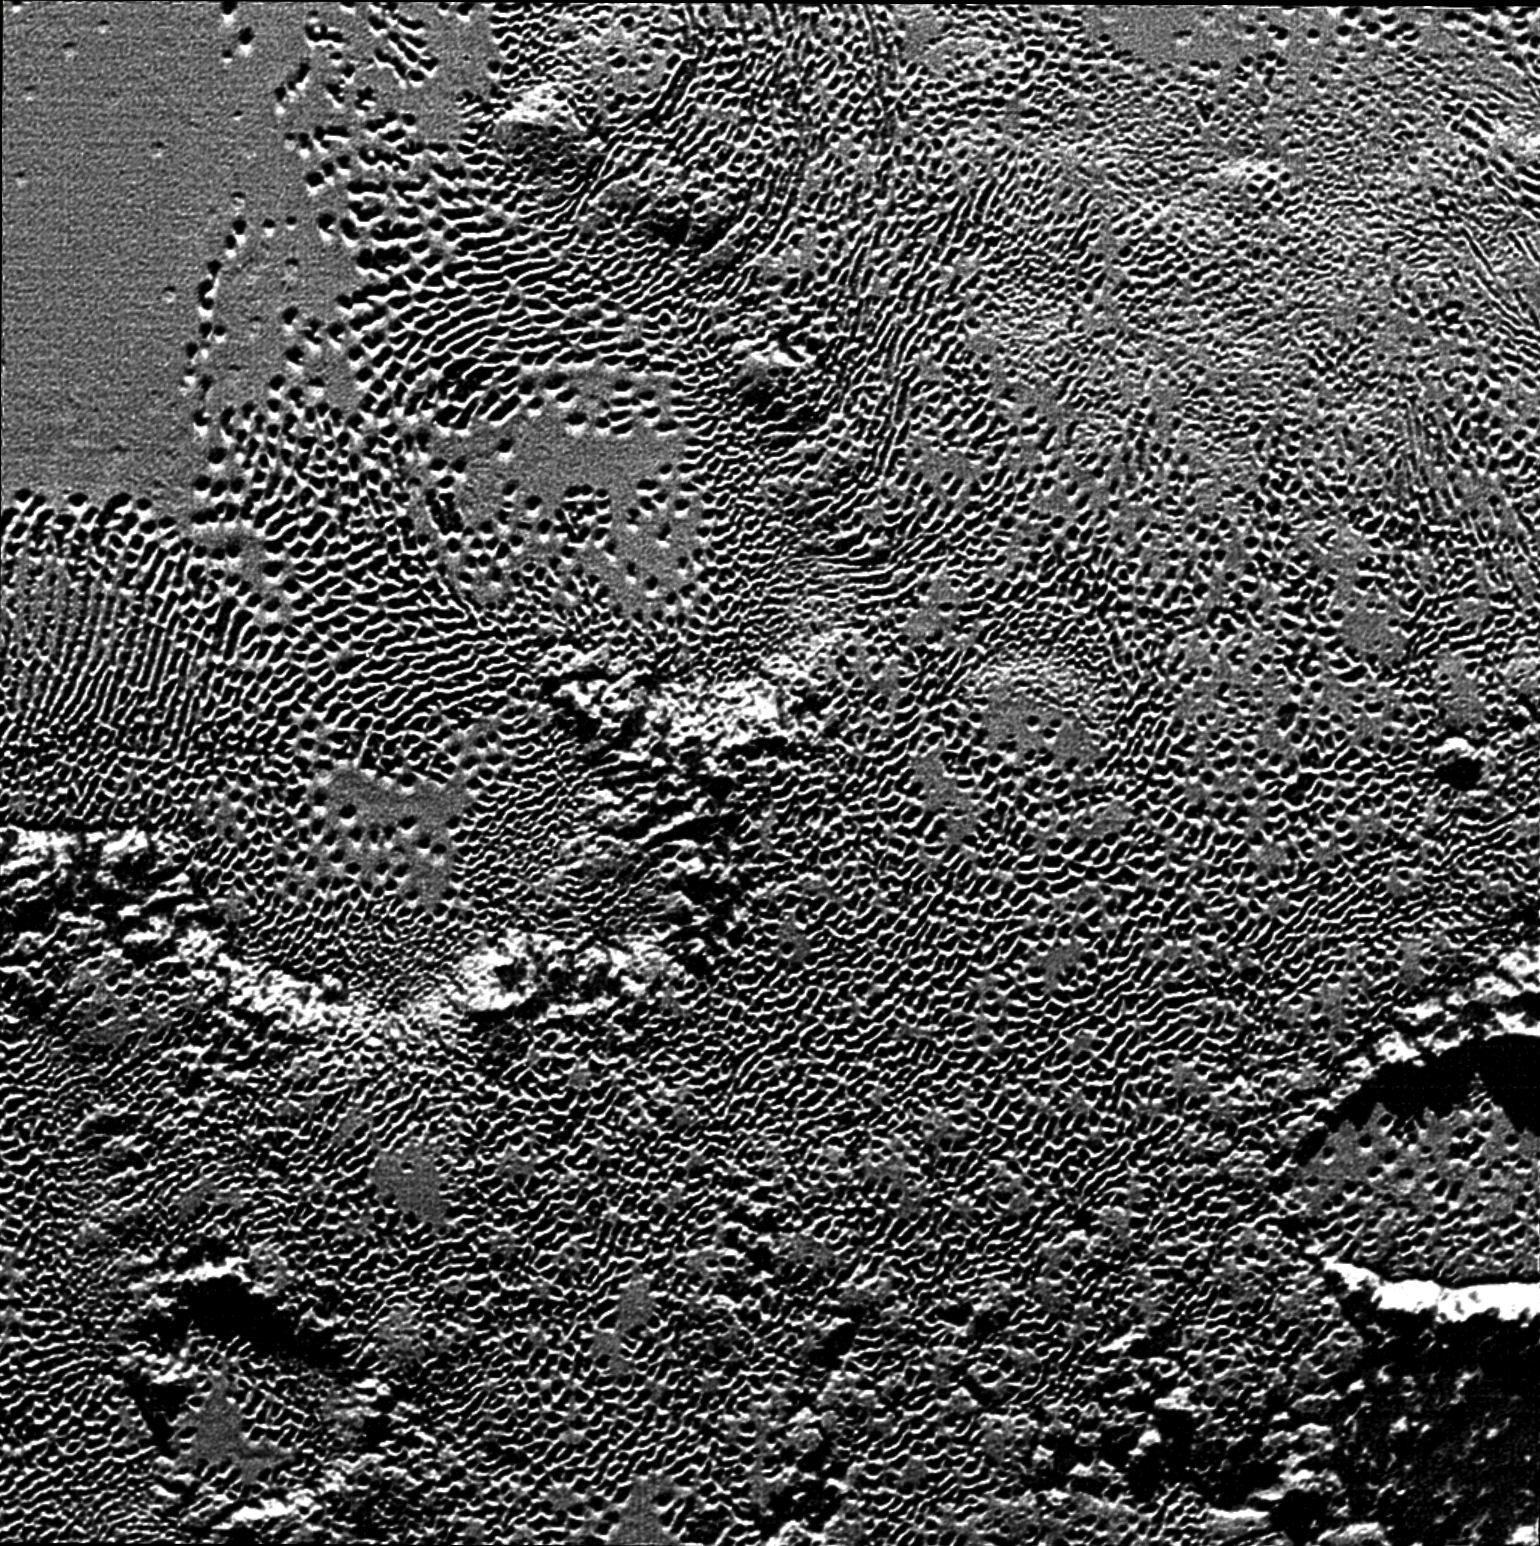 "On July 14 the telescopic camera on NASA's New Horizons spacecraft took the highest resolution images ever obtained of the intricate pattern of ""pits"" across a section of Pluto's prominent heart-shaped region, informally named Tombaugh Regio."